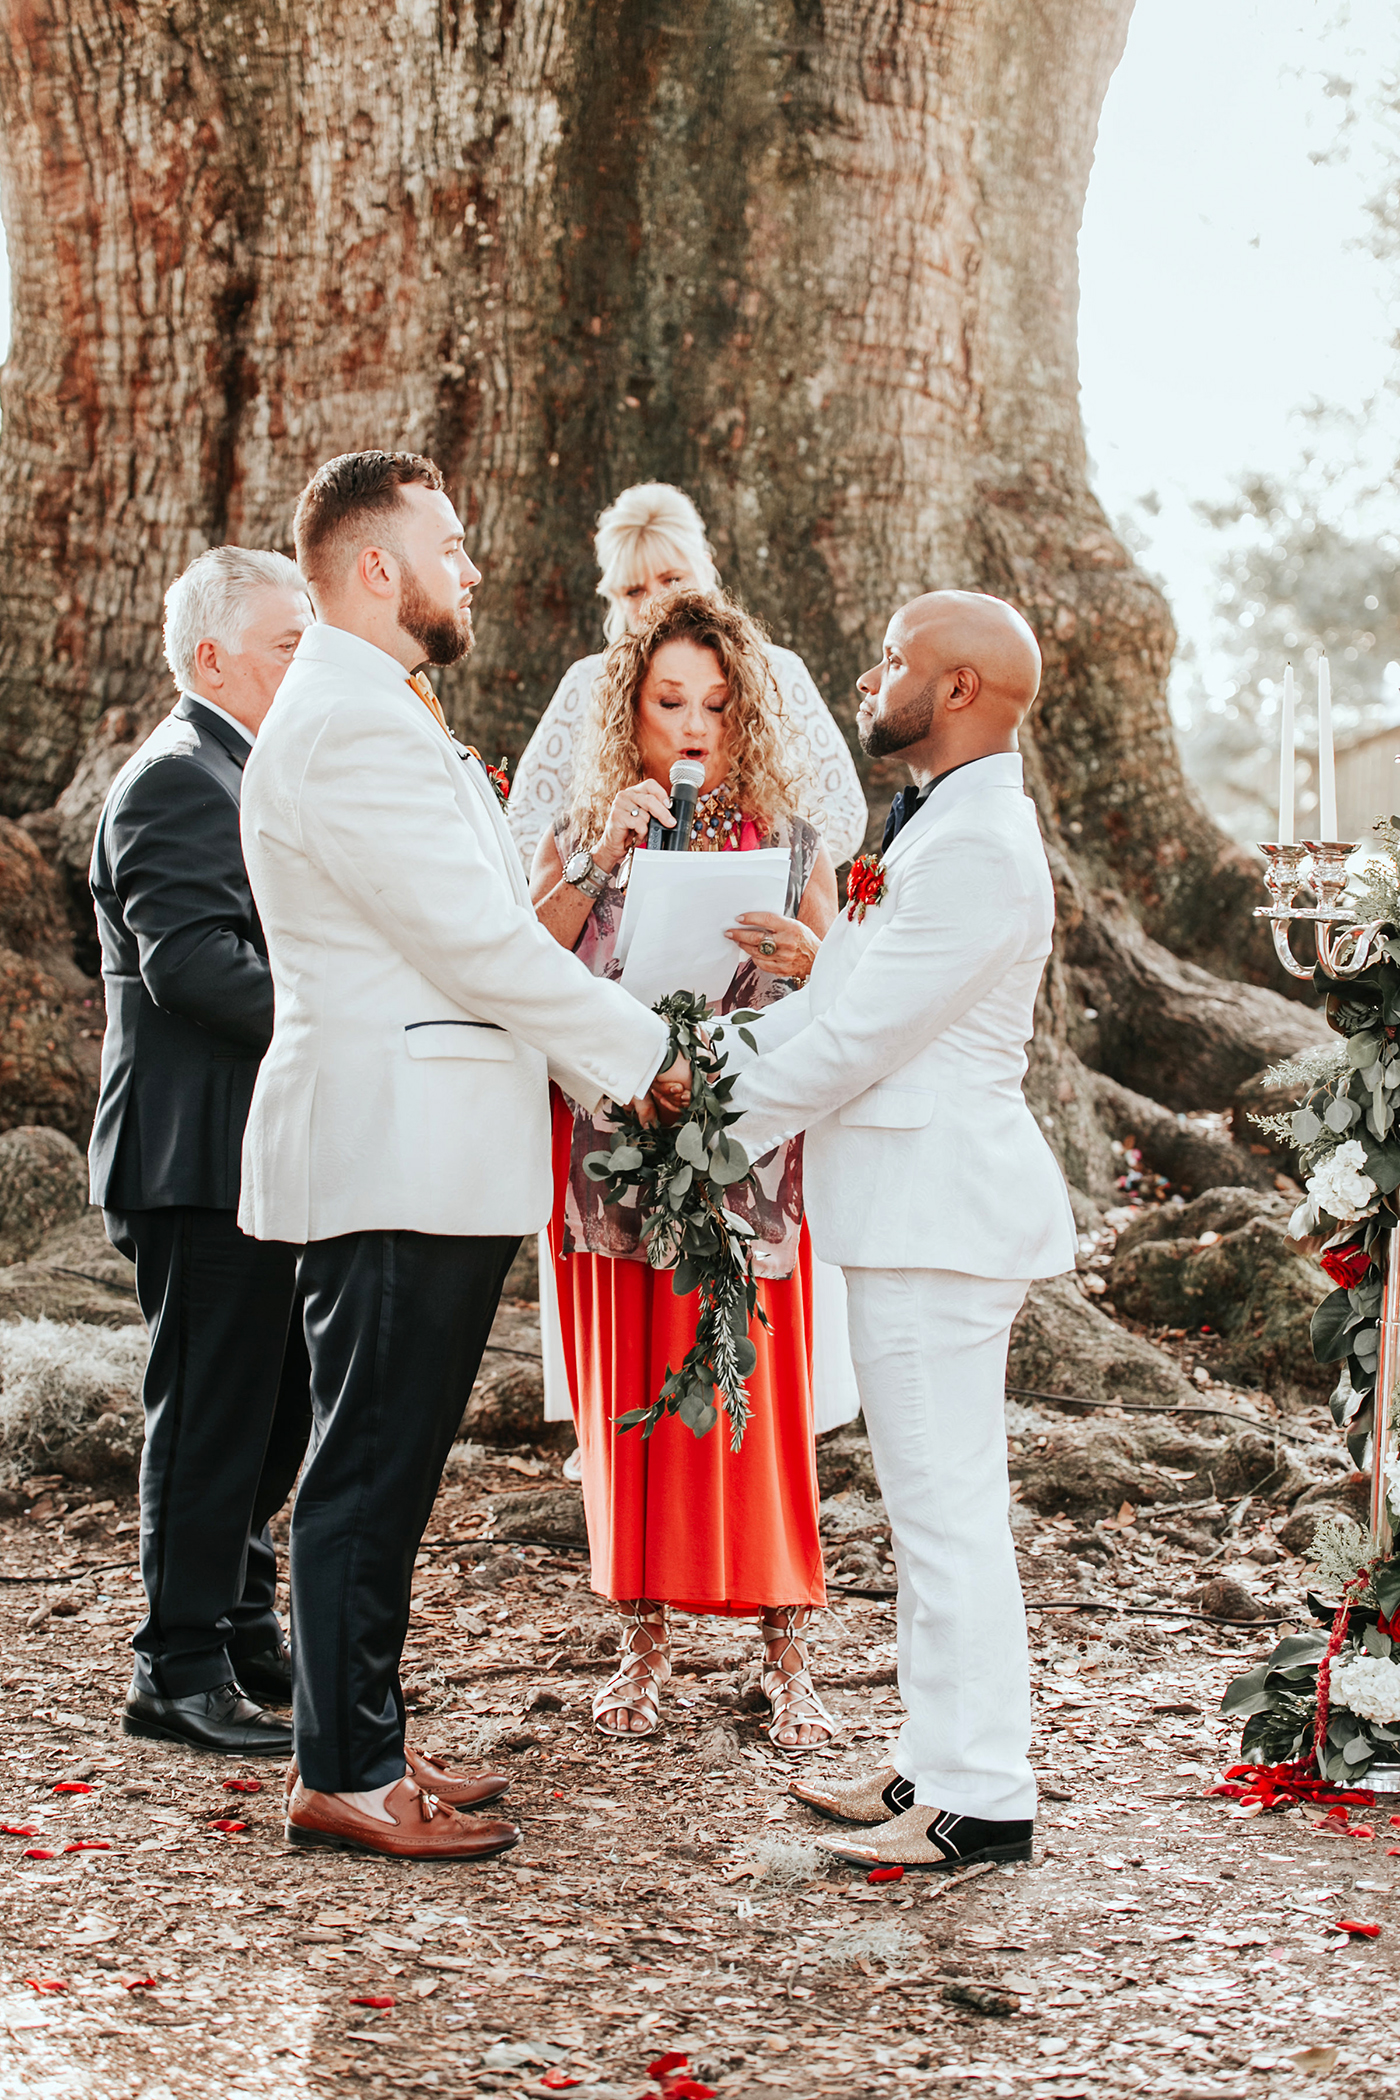 joe tim new orleans wedding ceremony by tree